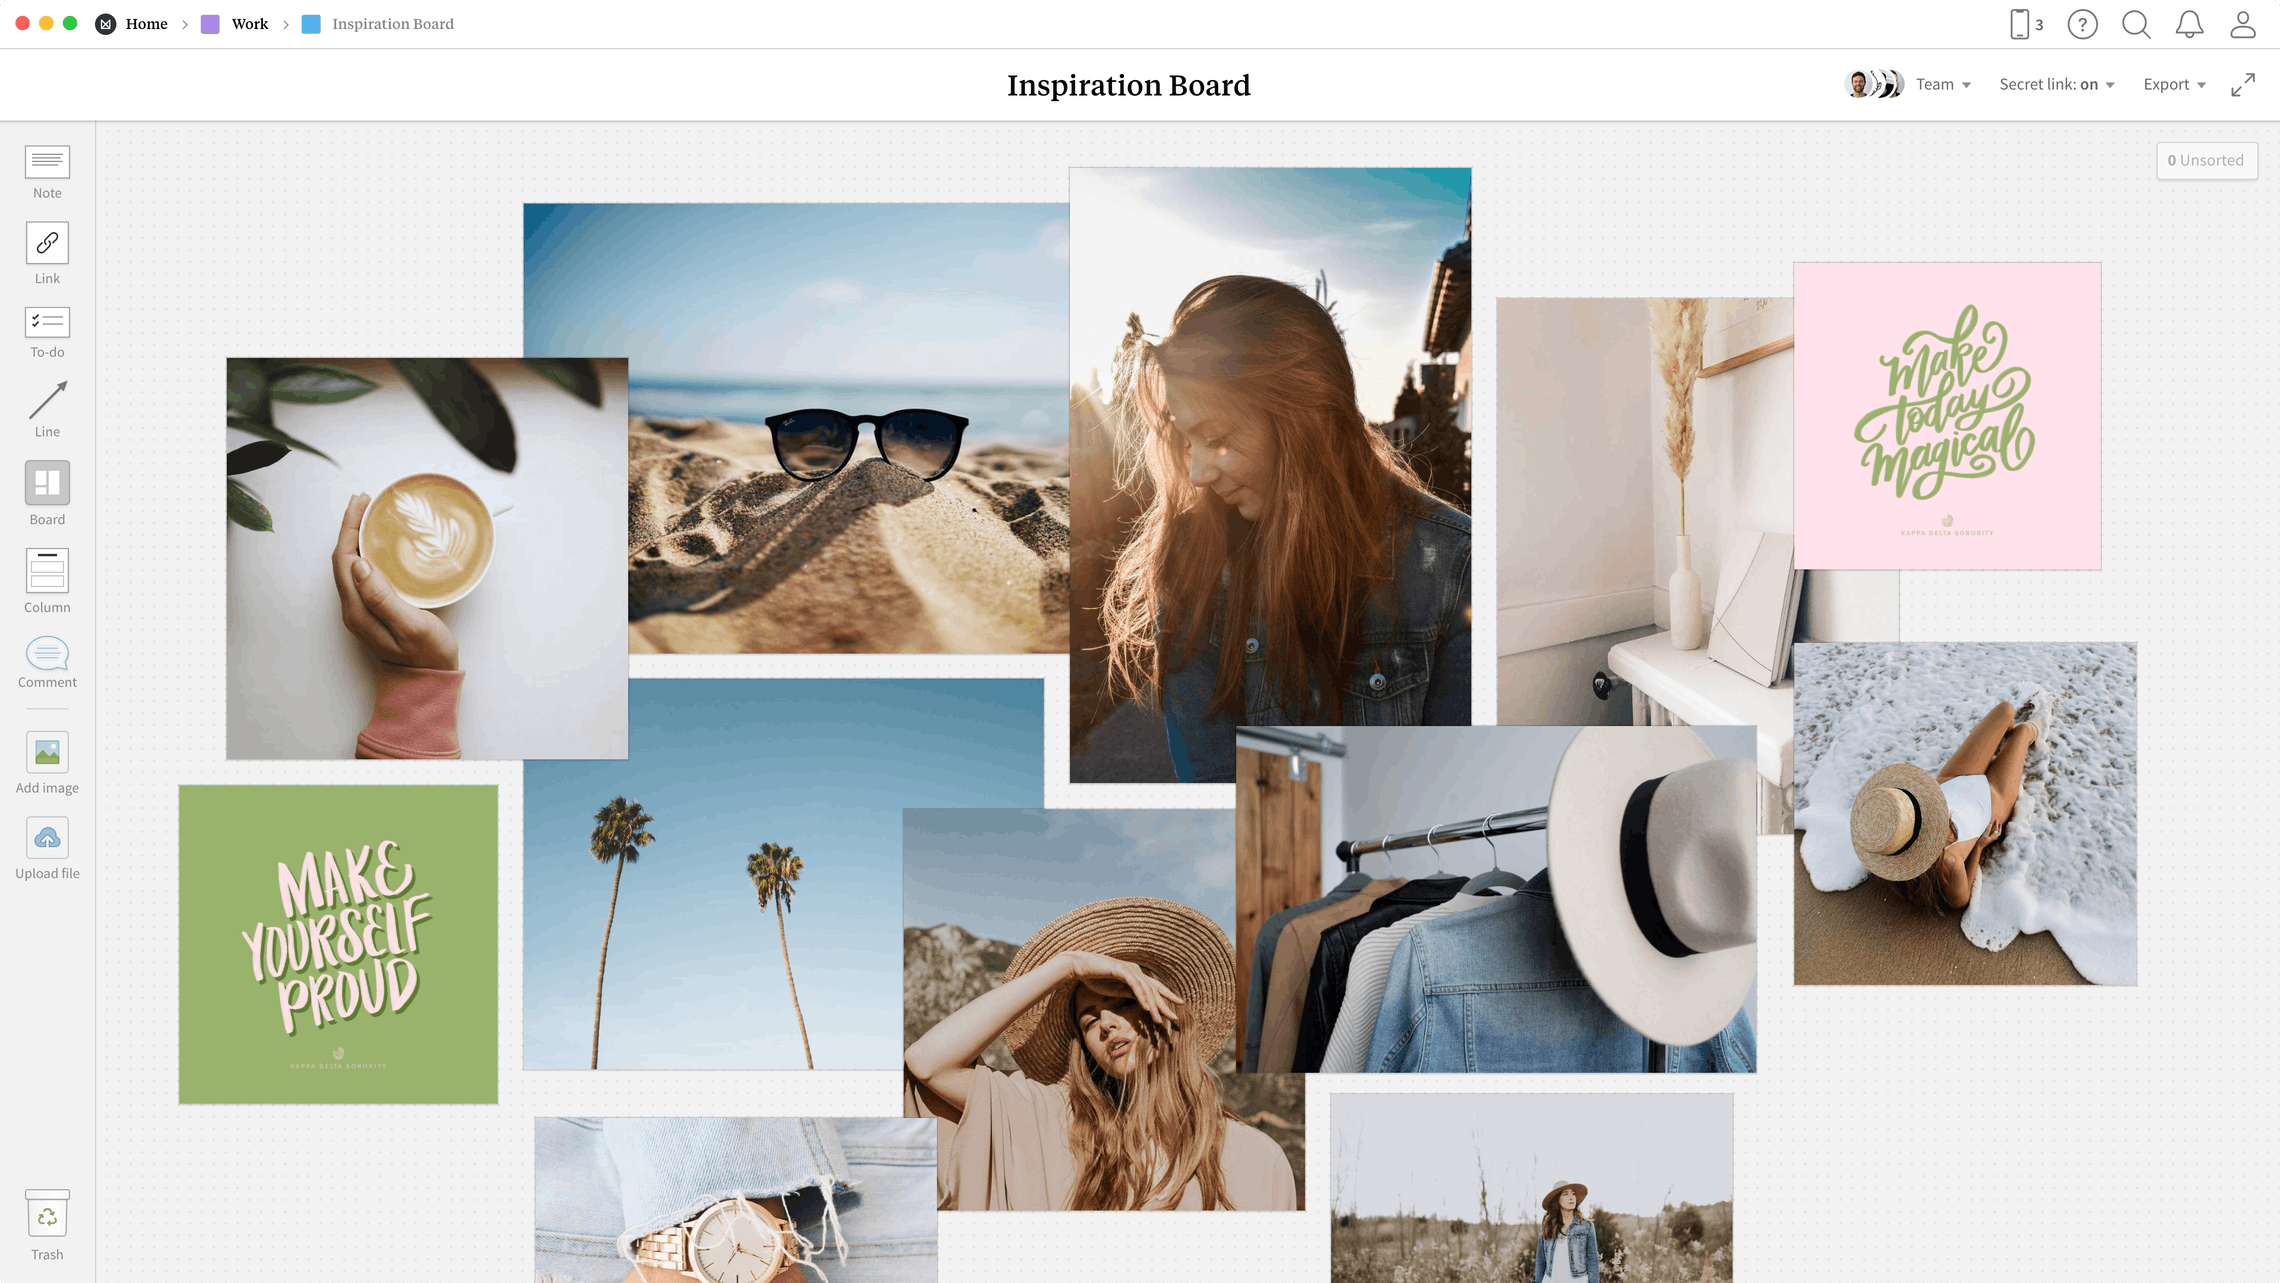 Inspiration Board Template, within the Milanote app